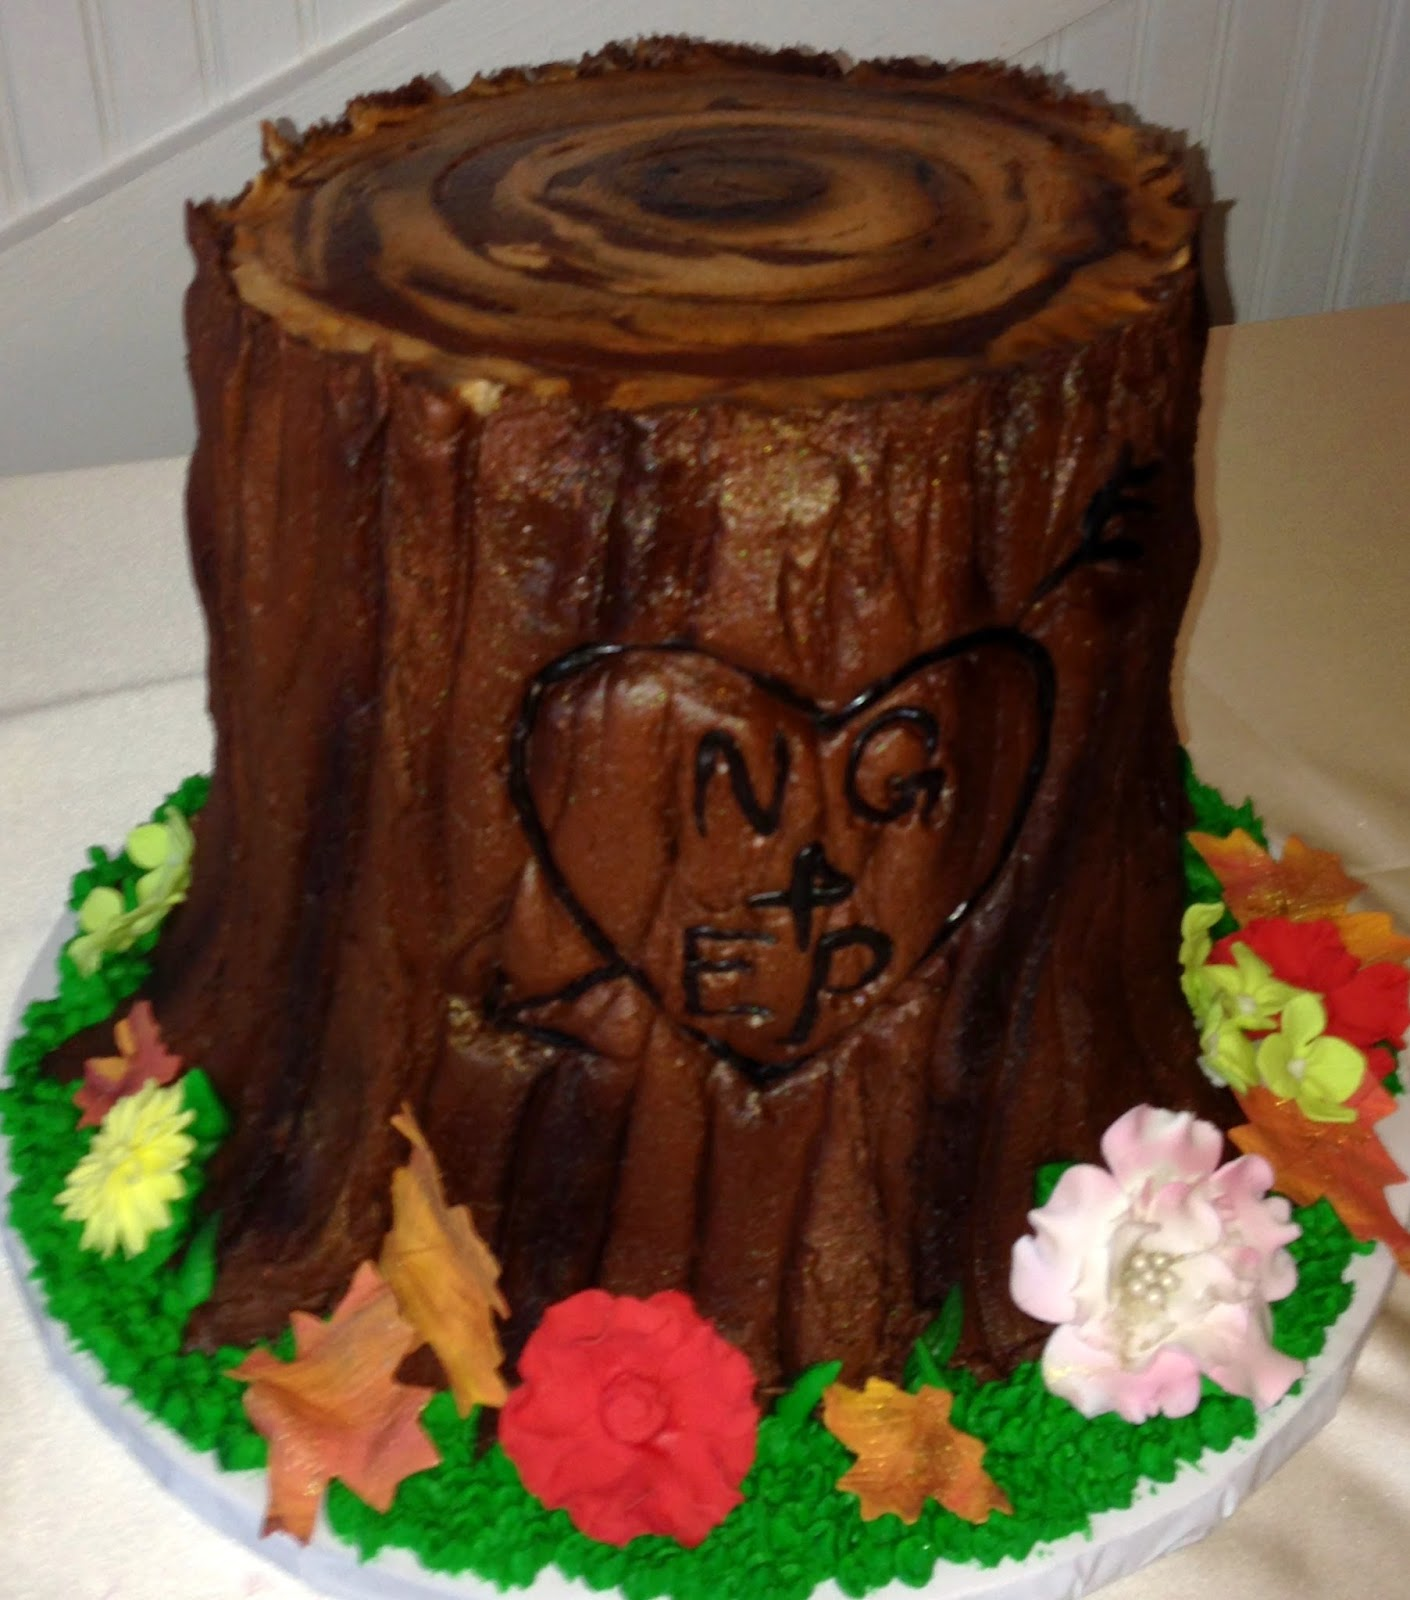 Tree Stump Cake, Frisco Heritage Center, Culinary Art Catering